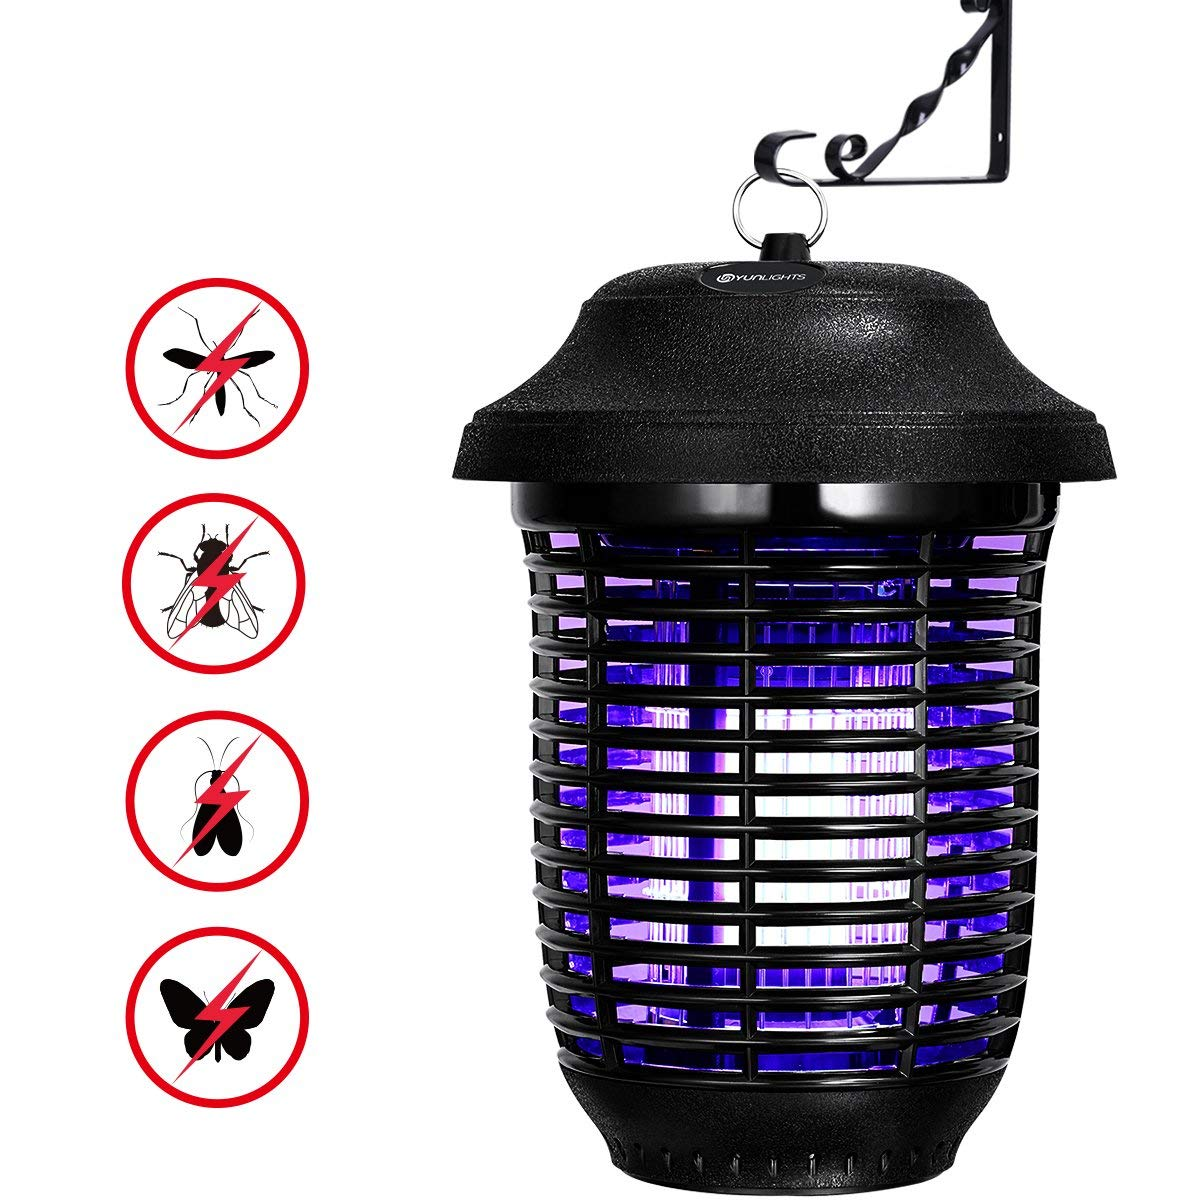 YUNLIGHTS Electric Fly Zapper 40W, Mosquito Zapper Indoor and Outdoor Bug Zapper Mosquito Fly Killer Light for Home Kitchen Office Patio Backyard Effect 1615 sq. Ft.(Black) by YUNLIGHTS